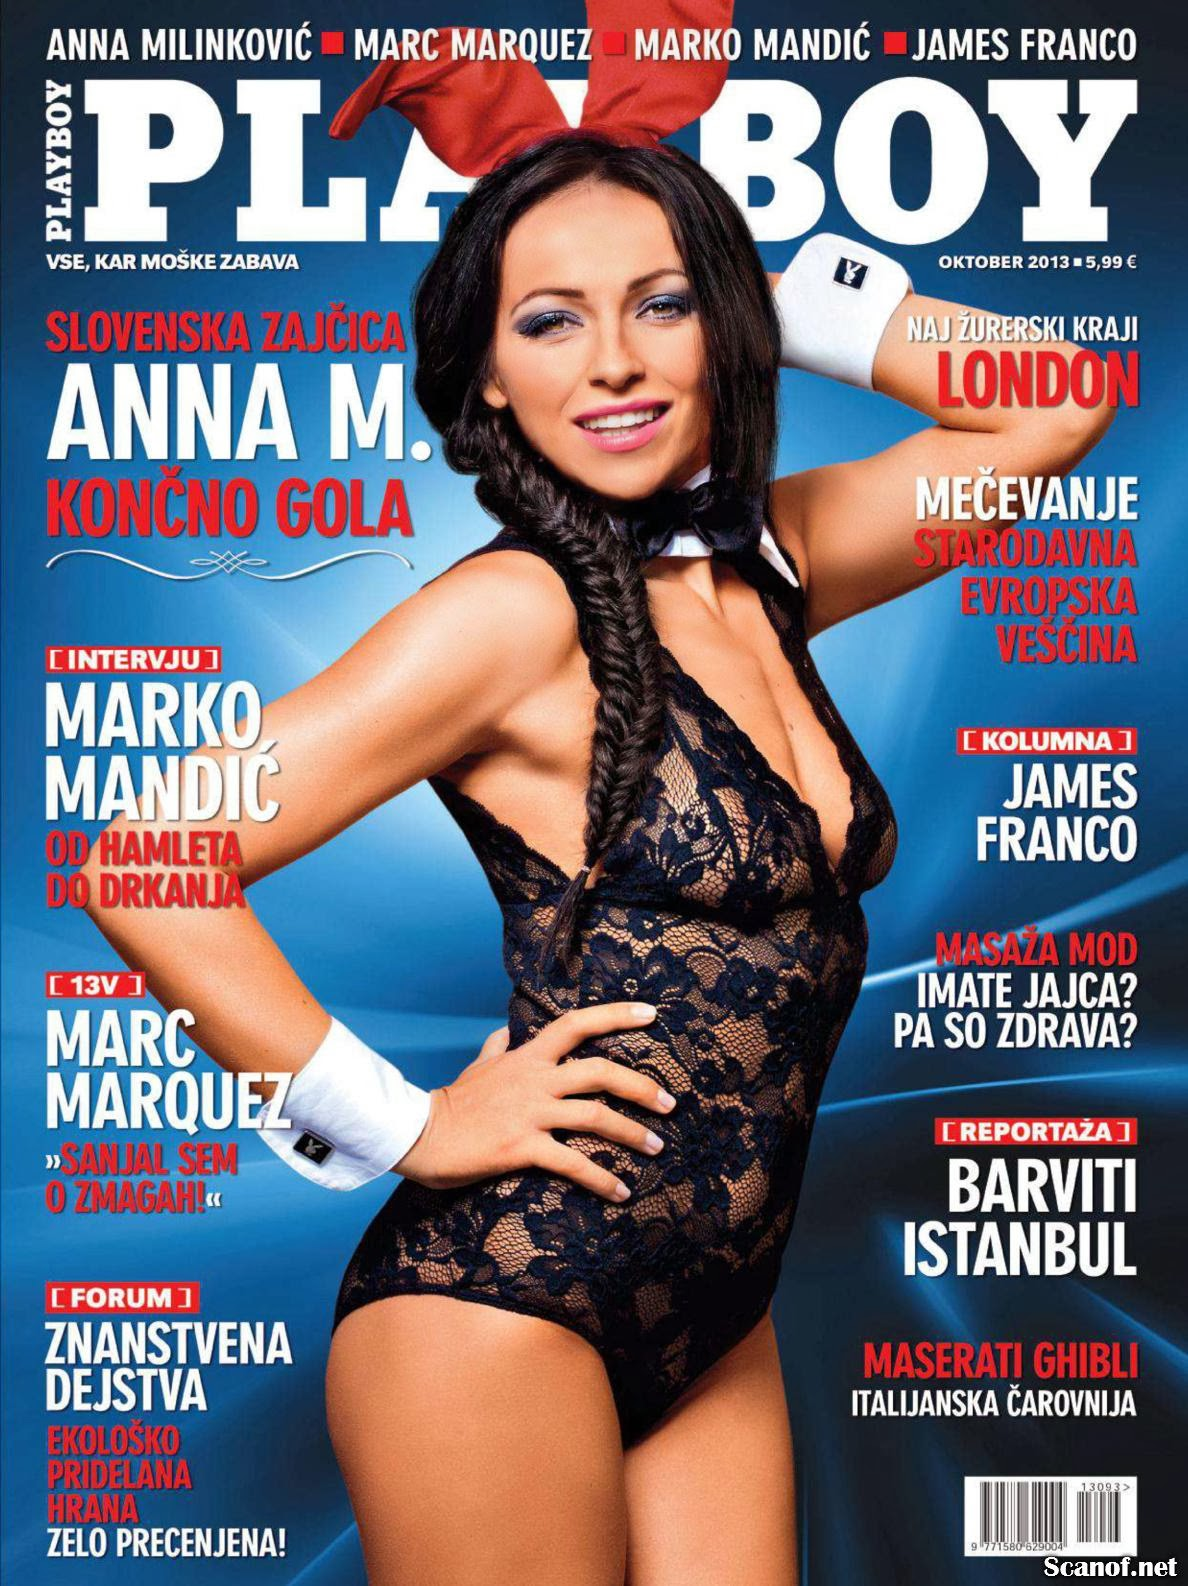 photos of anna milinkovic from playboy slovenia october 2013 issue